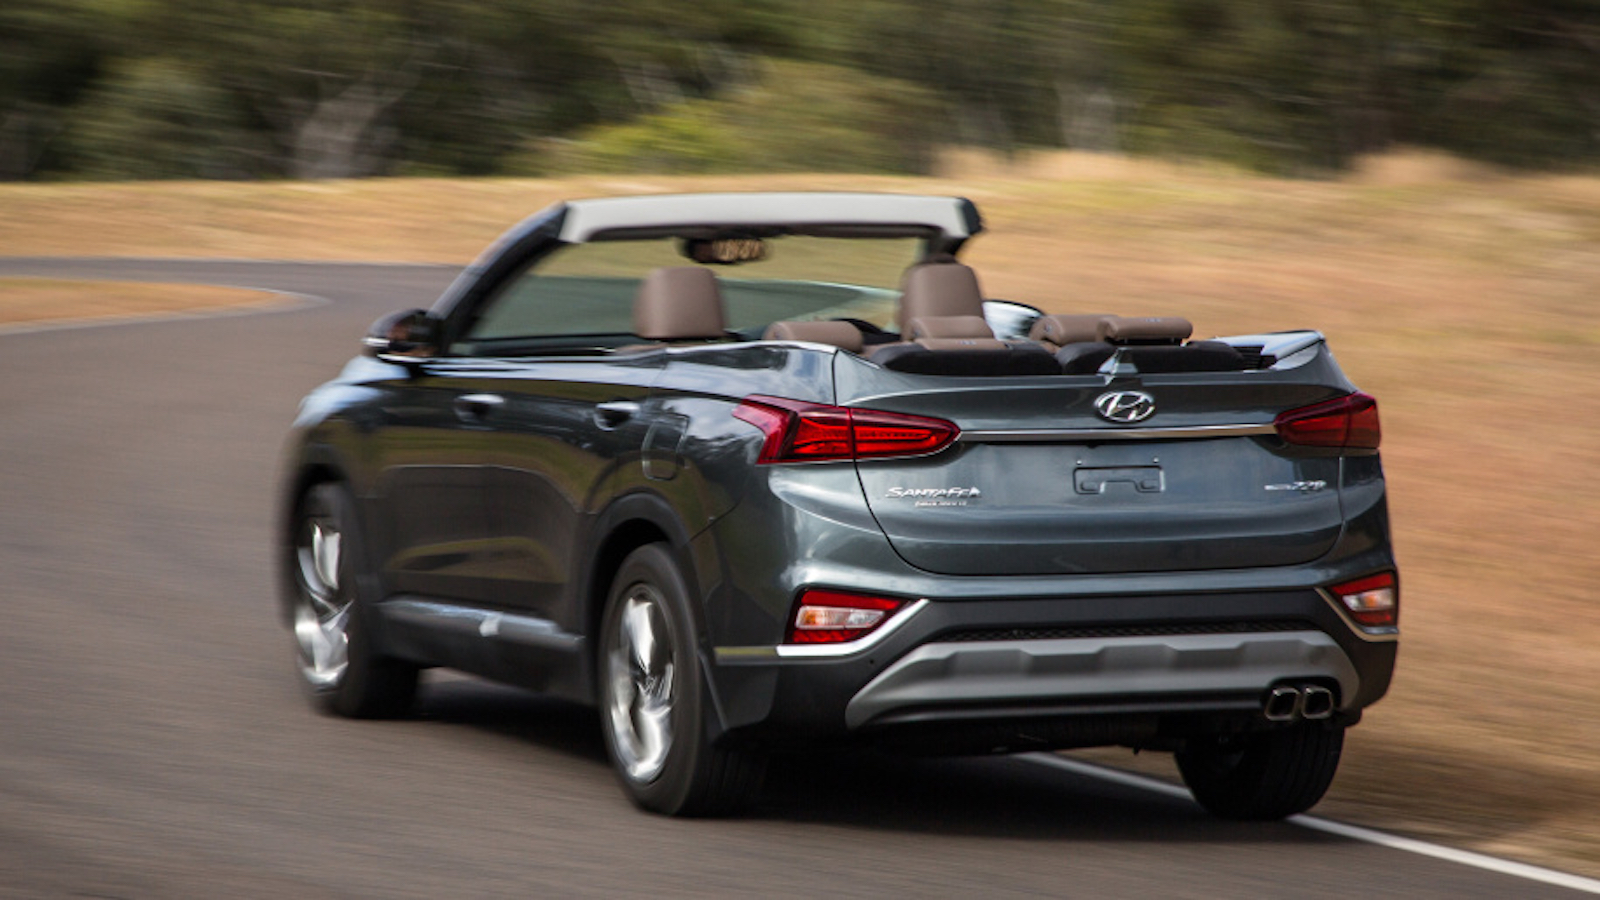 Hyundai Santa Fe Cabriolet Open Air Motoring For You And Six Others